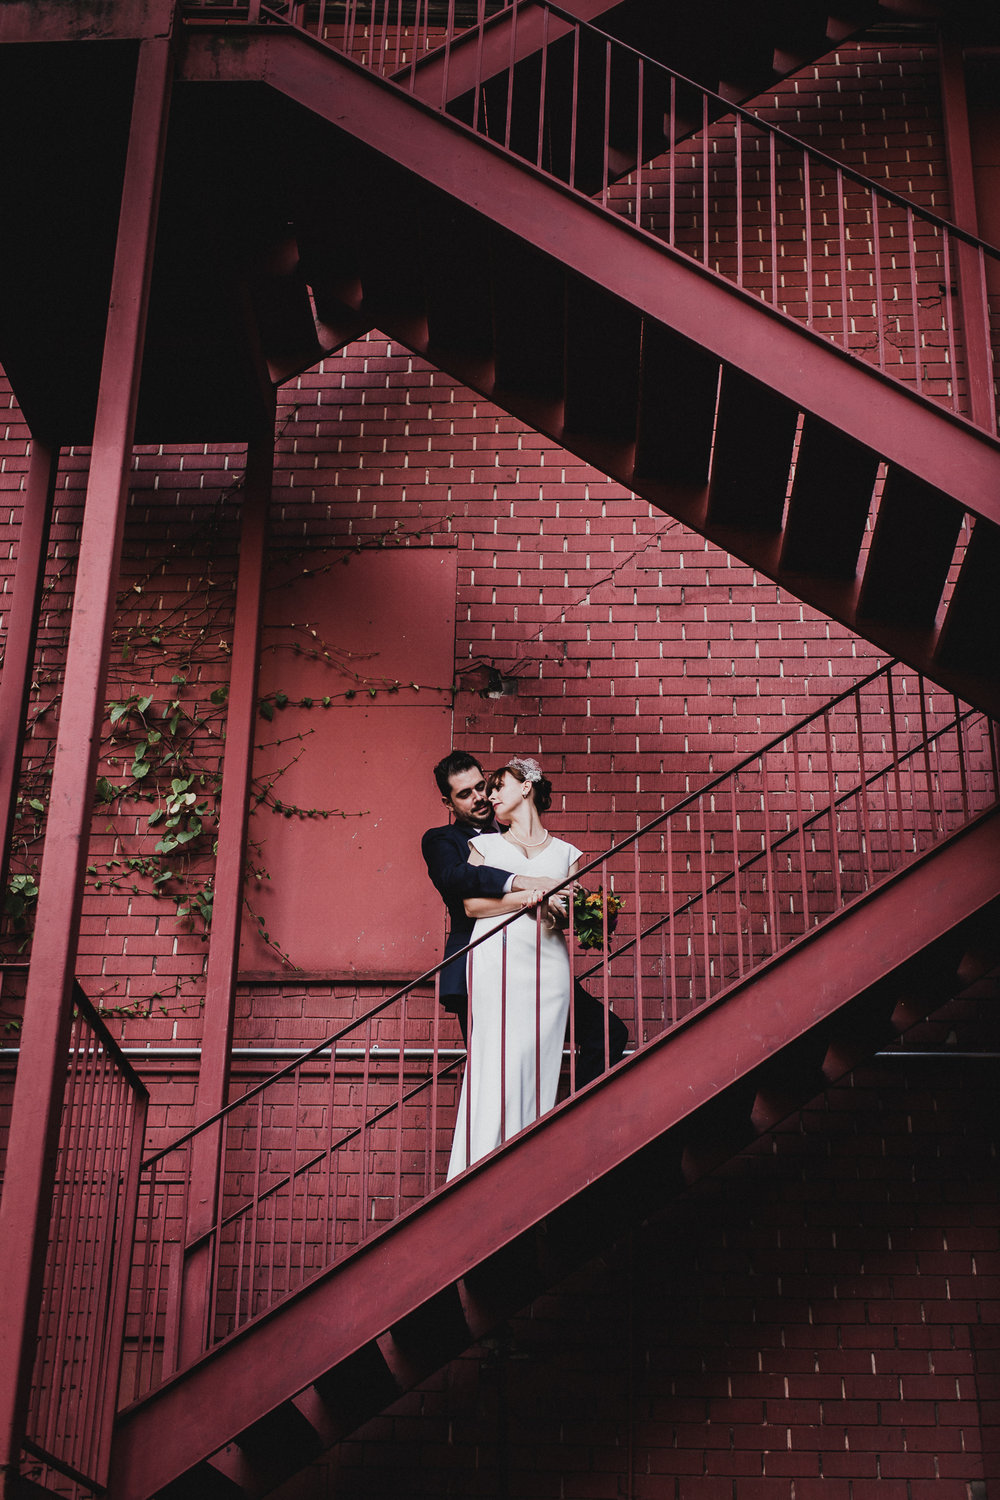 New-York-Documentary-Wedding-Photography-Best-Of-2017-by-Elvira-Kalviste-Photography-130.jpg